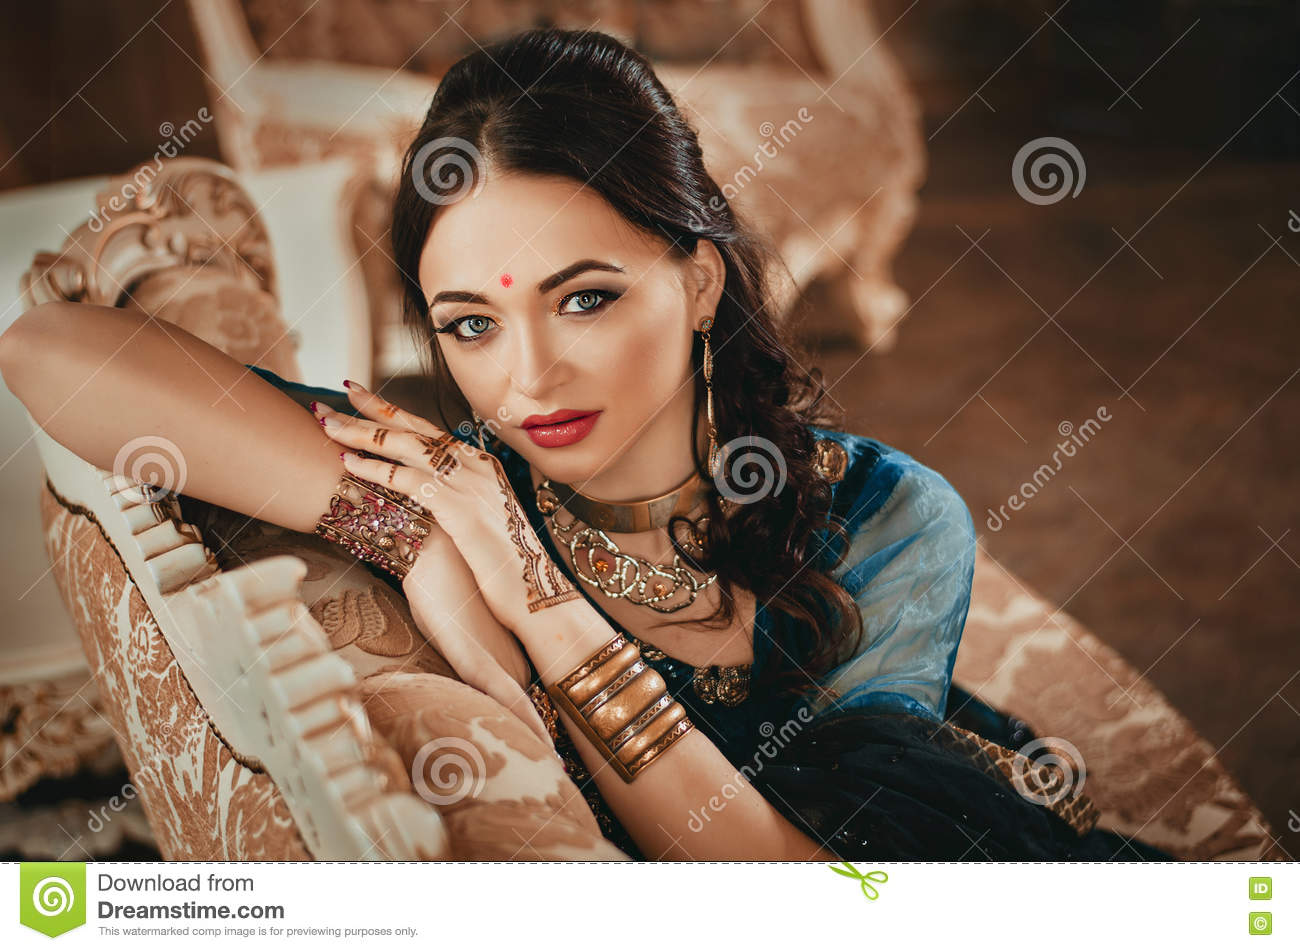 Portrait of a beautiful woman in Indian traditional Chinese dress, with her hands painted with henna mehendi. Girl sitting on a lu